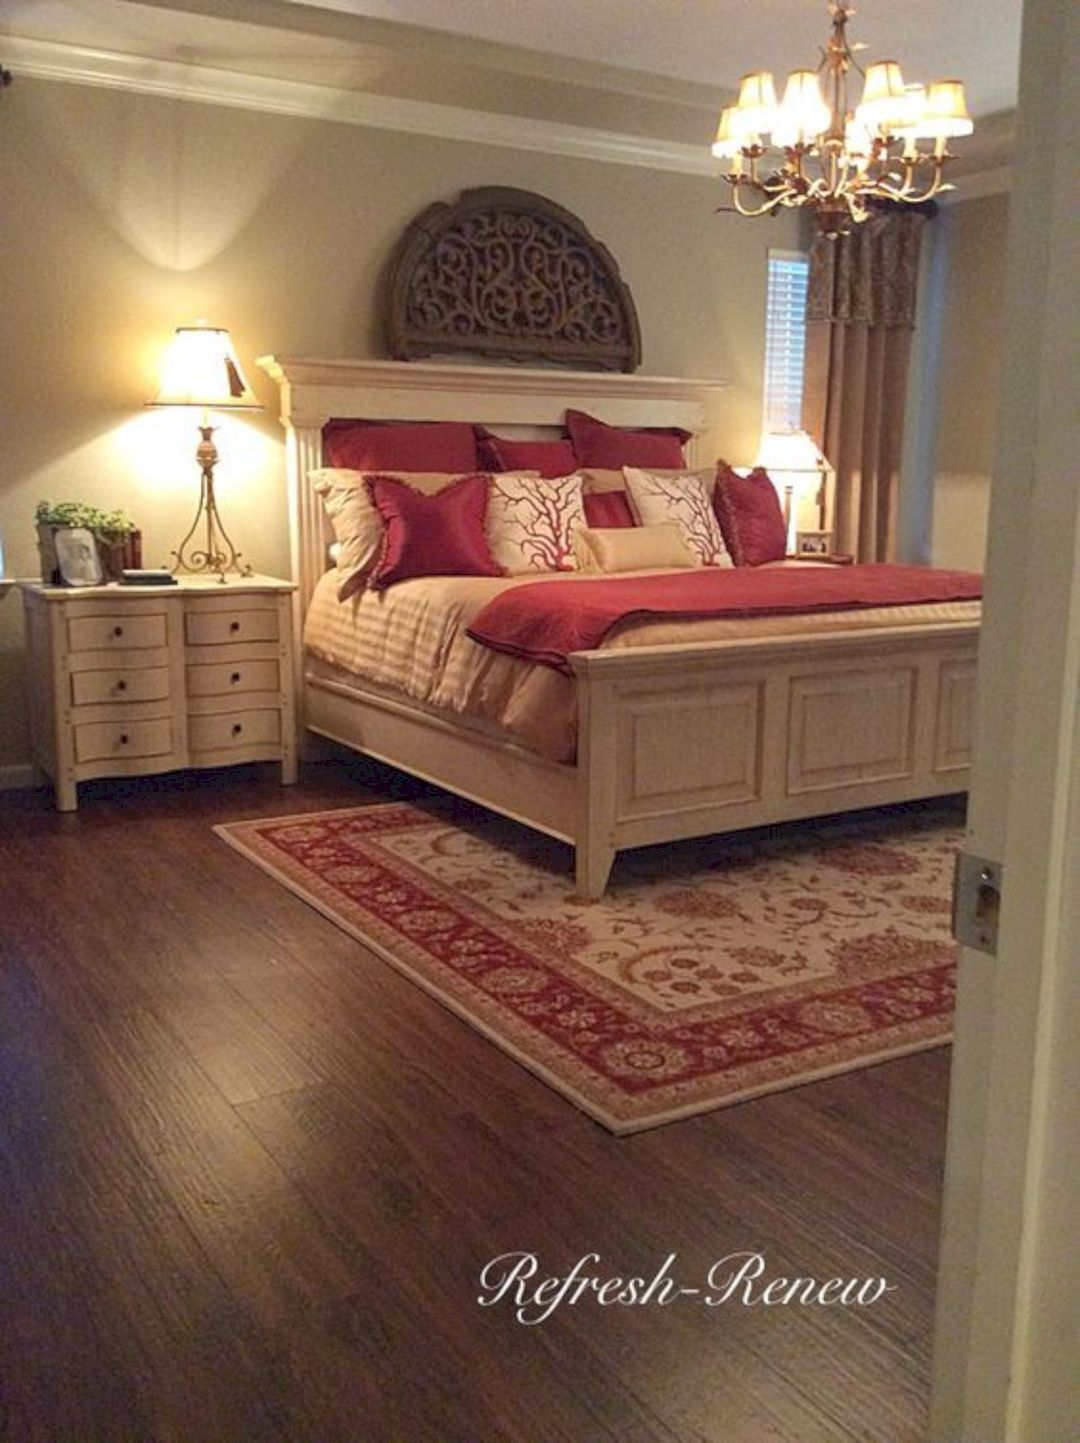 16 Furniture Ideas for A Super Cozy Bedroom | Furniture ideas, Cozy on bedroom lighting ideas, bedroom room wallpaper, wall decorating ideas, bedroom loft space, girls bedroom ideas, turquoise bedroom room ideas, bathroom decorating ideas, bedroom crafts ideas, bedroom room inspiration, benches decorating ideas, bedroom christmas ideas, bedroom kitchen ideas, bedroom room trends, bedroom boys ideas, bedroom room painting ideas, bedroom room themes, bedroom room interior decoration, bedroom room diy, small bedroom ideas, kitchen decorating ideas,